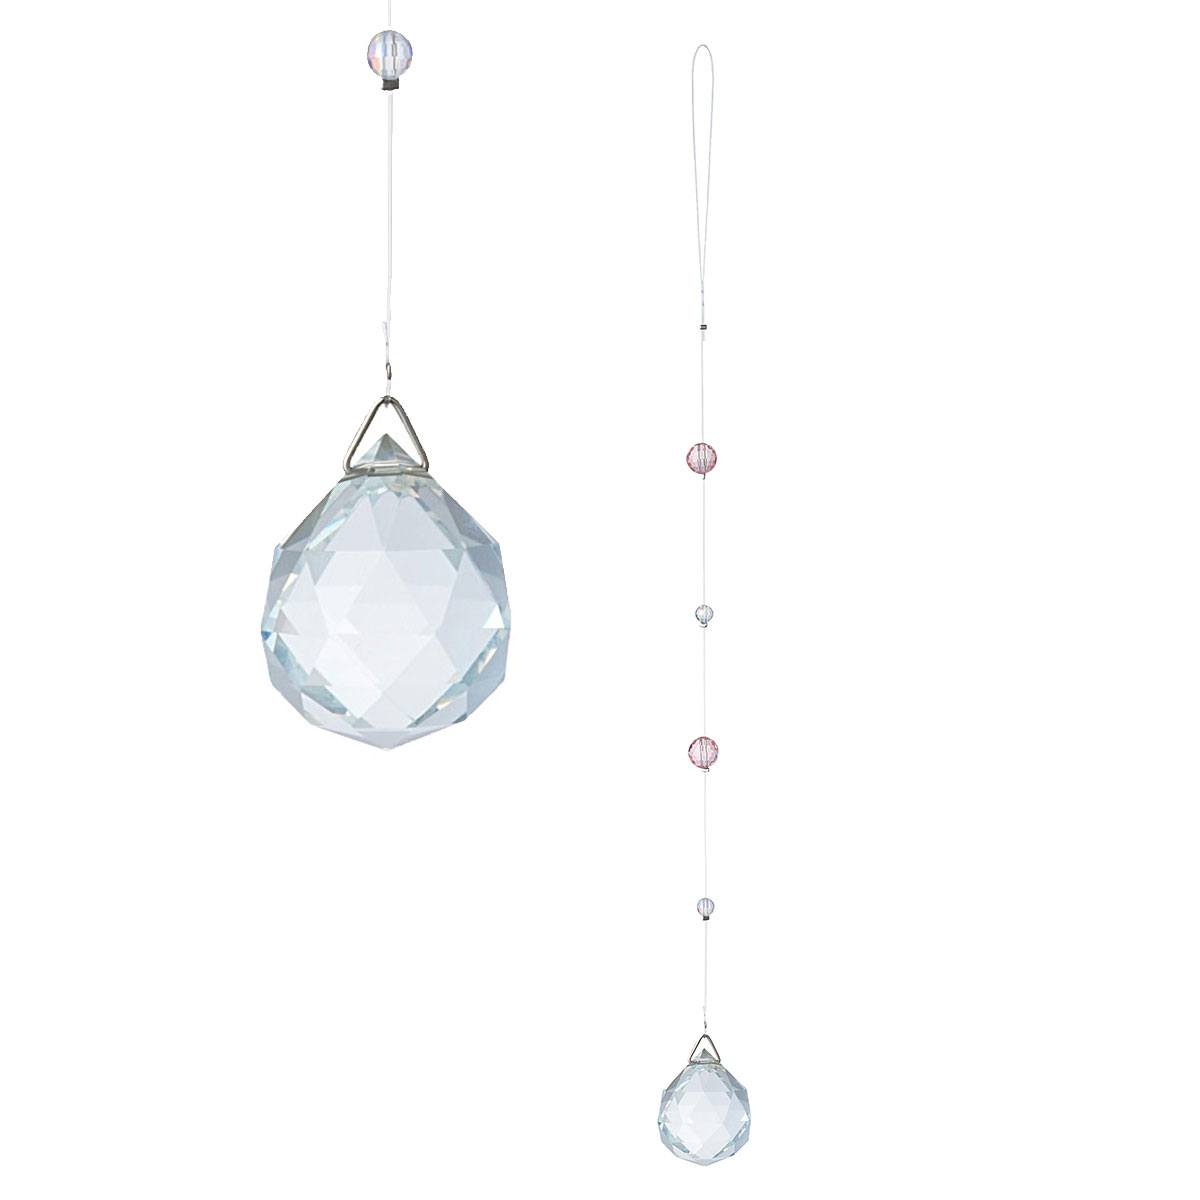 Sailor Moon Crystal Suncatcher Version B Usagi's Silver Crystal 4 cm